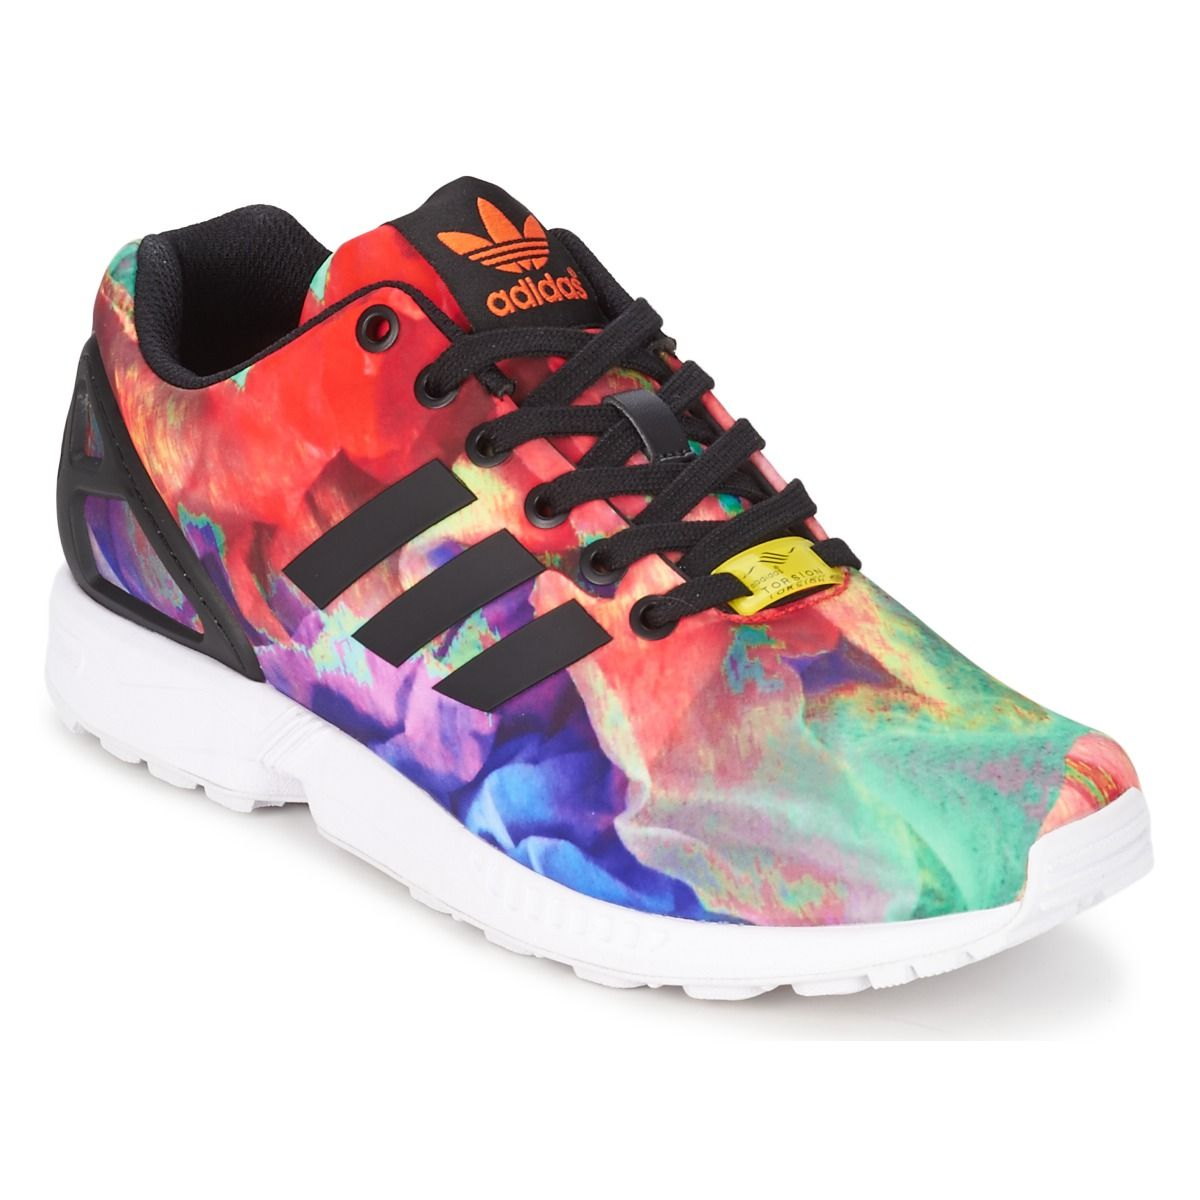 new arrival a377d 12814 adidas zx flux spartoo